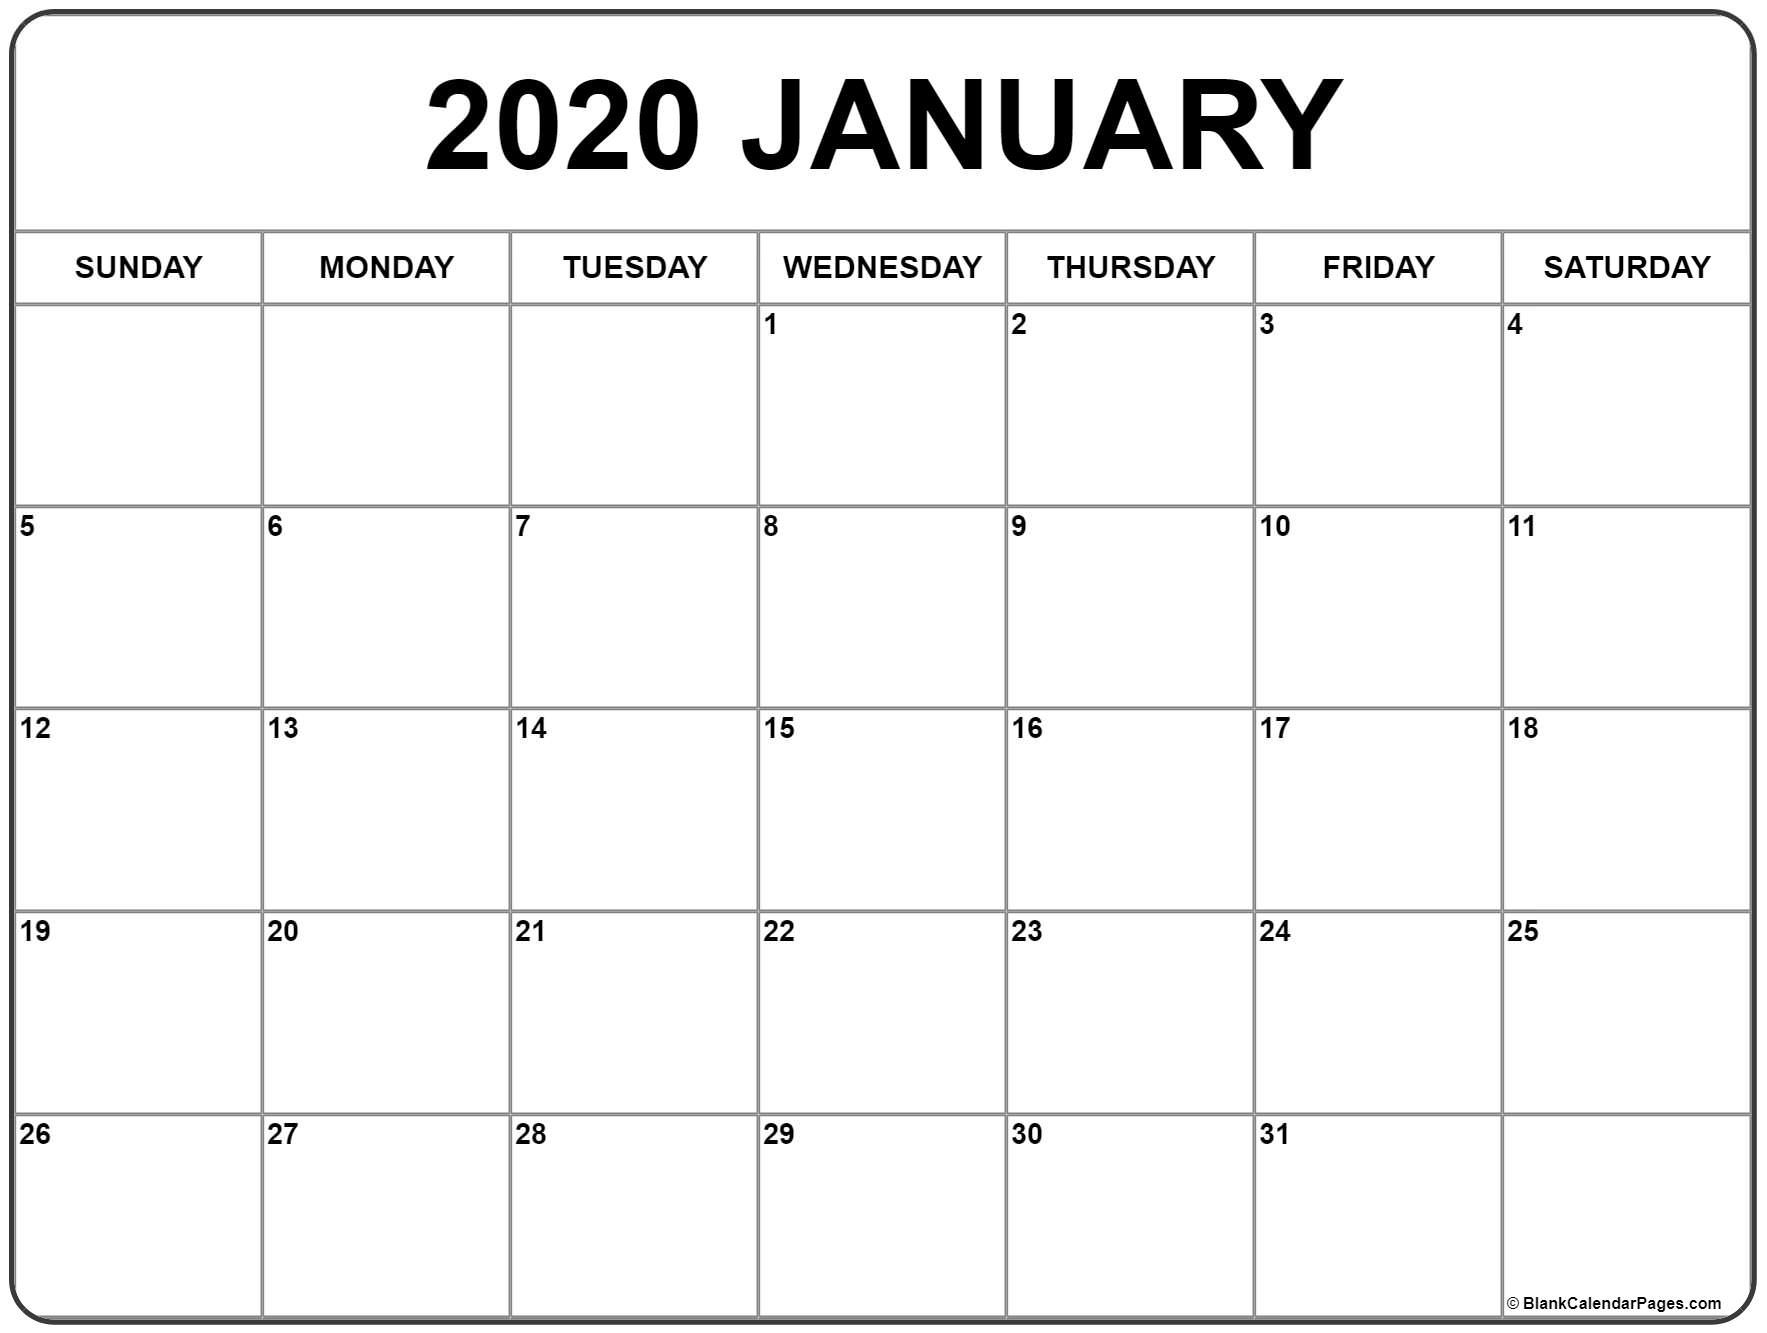 January 2020 Calendar | Free Printable Monthly Calendars for 2020 Fill In Calendar Fill In